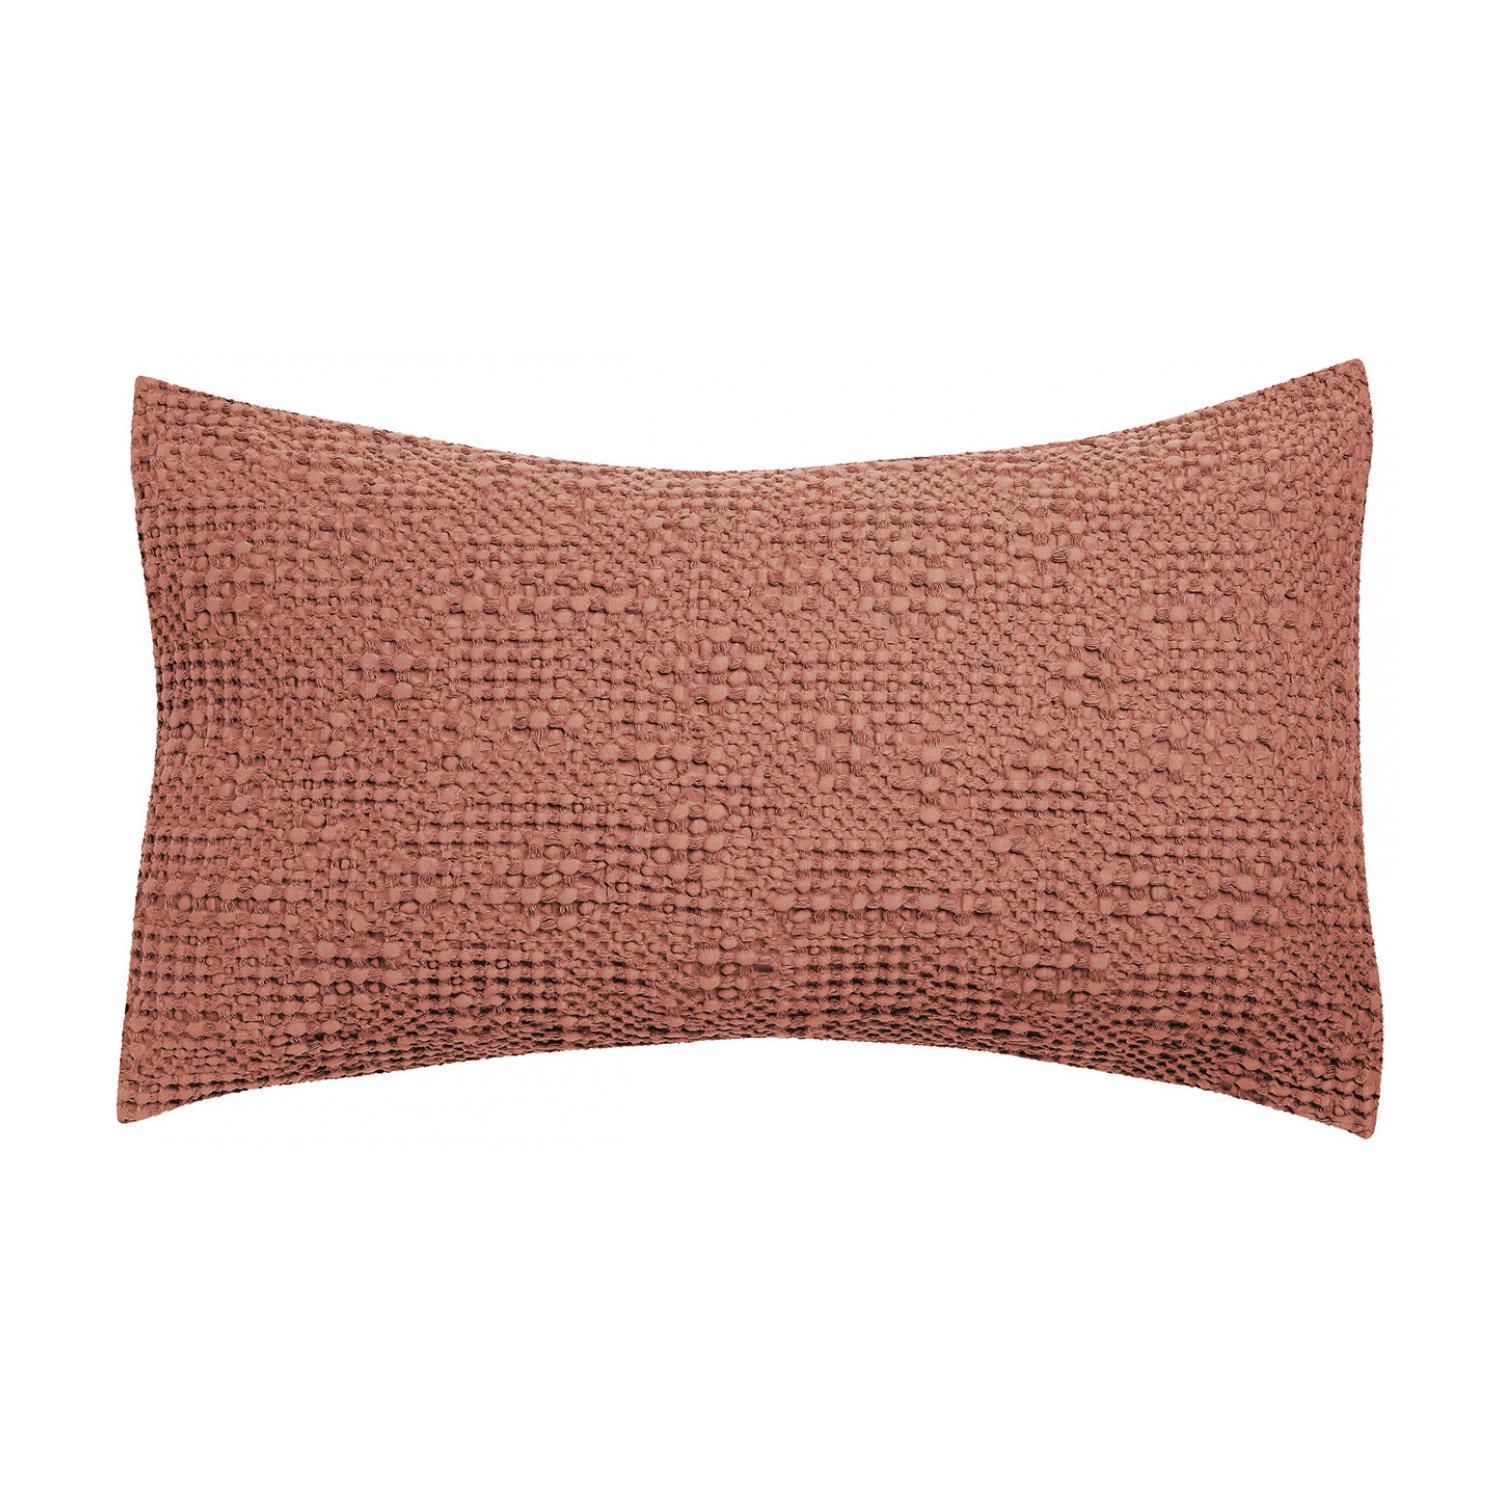 Coussin  en coton blush 40 x 65 (photo)